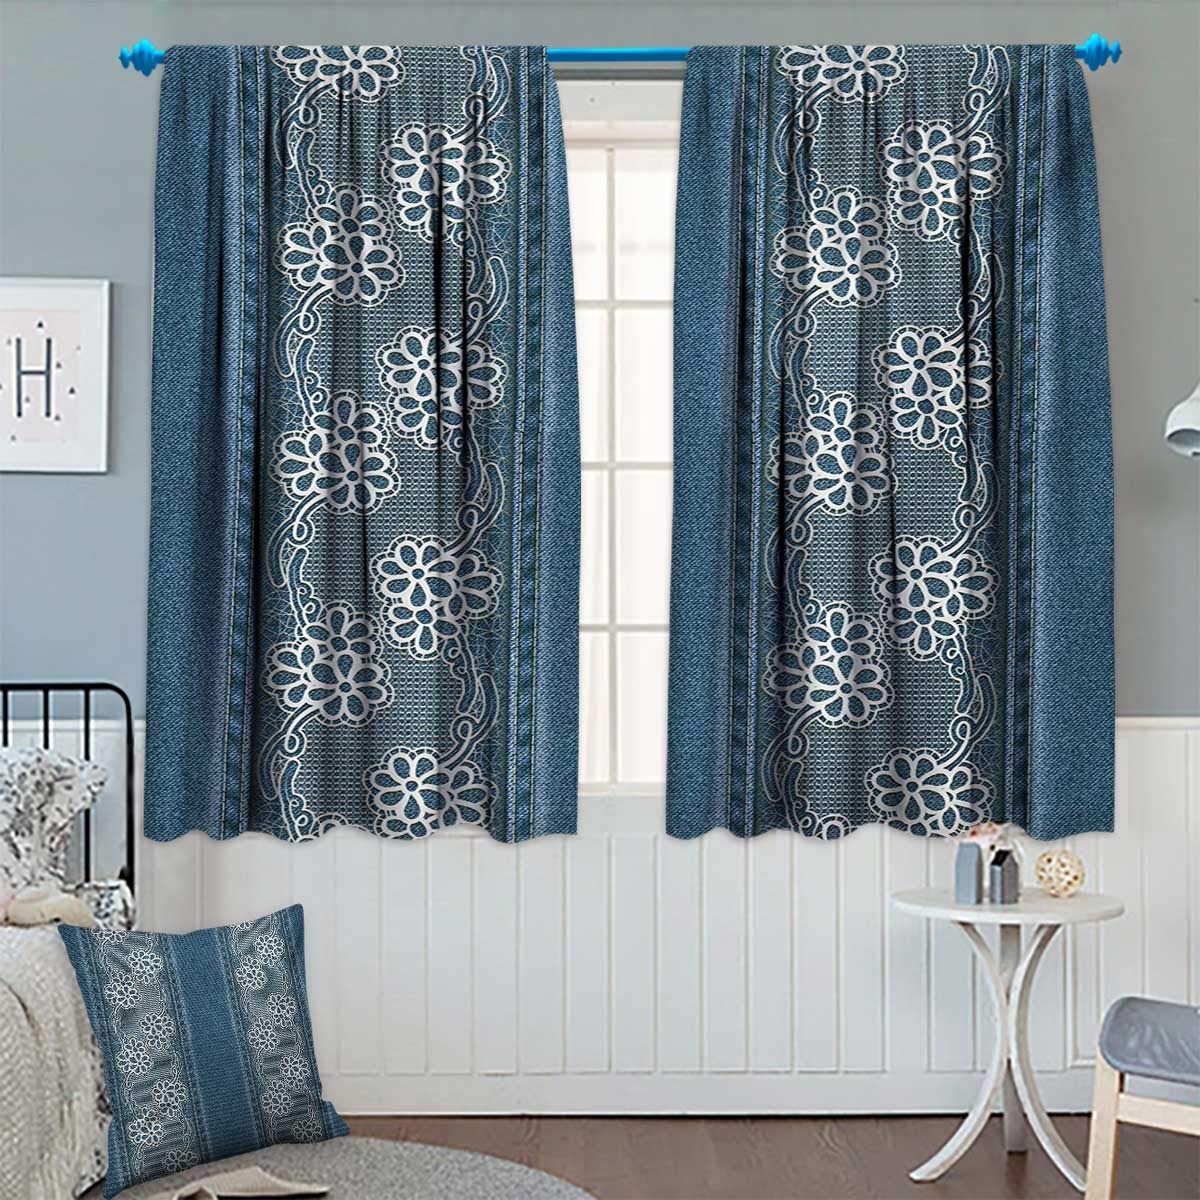 """Chaneyhouse Floral Waterproof Window Curtain Blue Jeans Background with White Flower Motifs Pattern Denim Themed Digital Print Blackout Draperies for Bedroom 72"""" W x 84"""" L Blue White"""